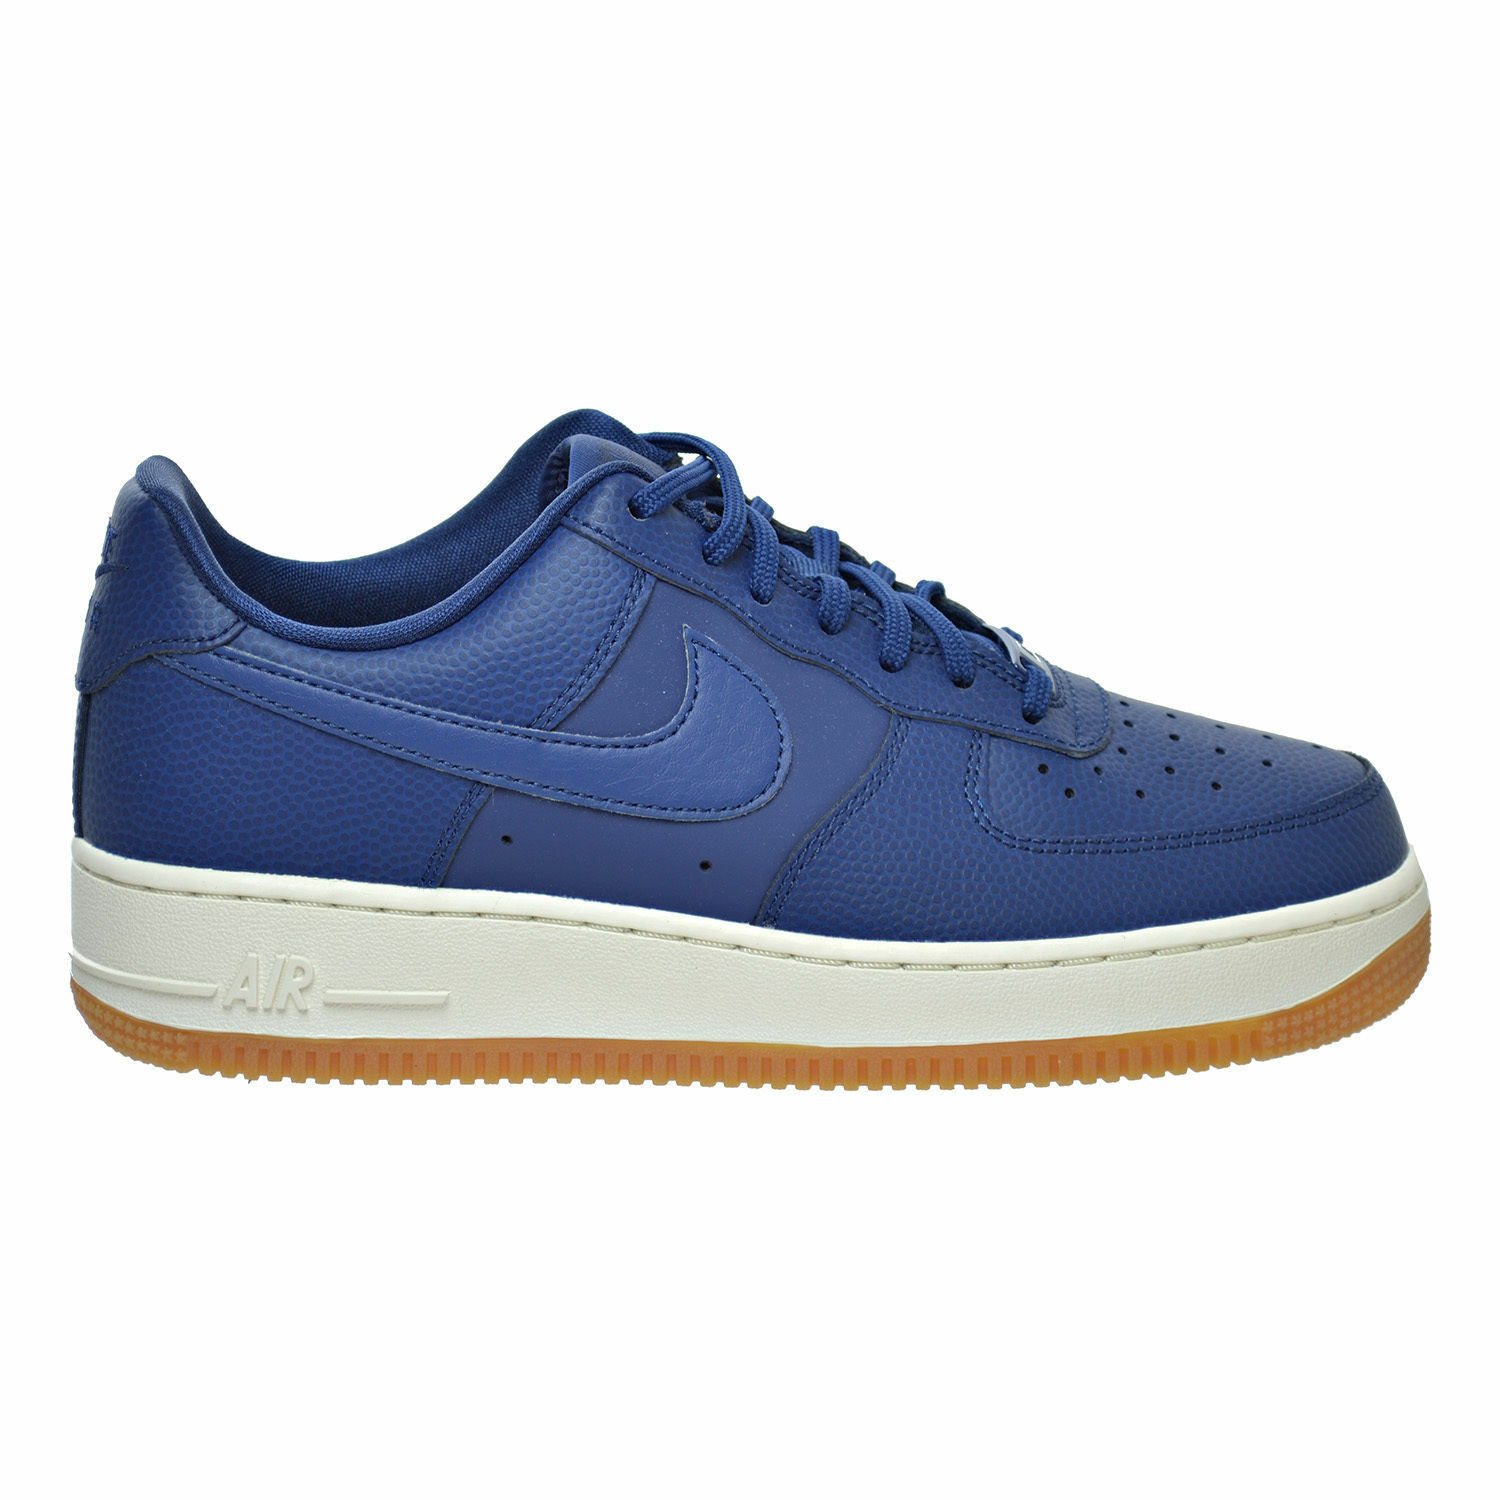 NIKE WOMEN'S AIR FORCE 1 '07 SEASONAL Schuhe coastal bue 818594 401